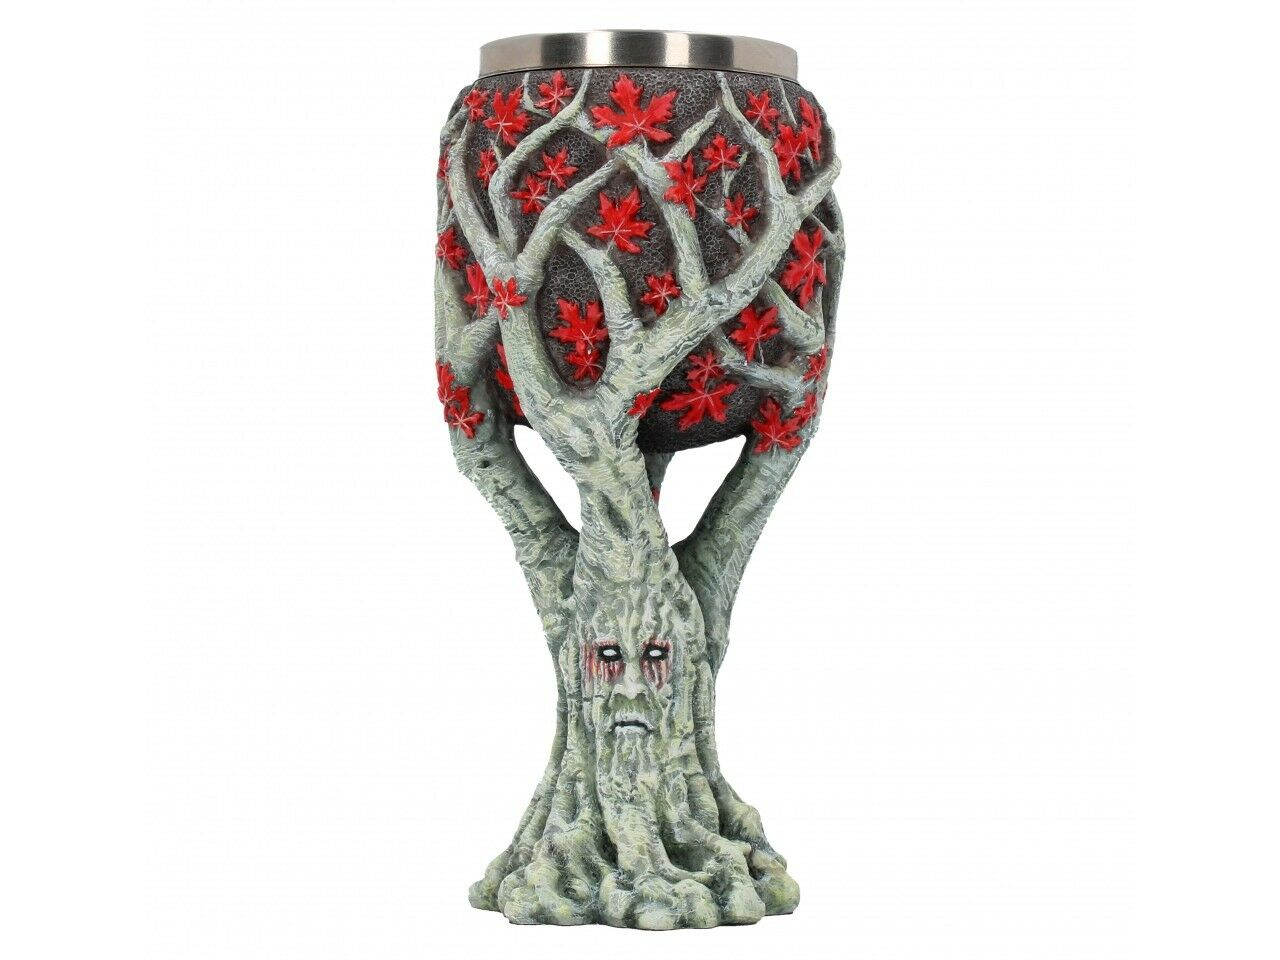 Game of Thrones  Official HBO Merchandise-Weirwood Tree Tasse 17.5 cm